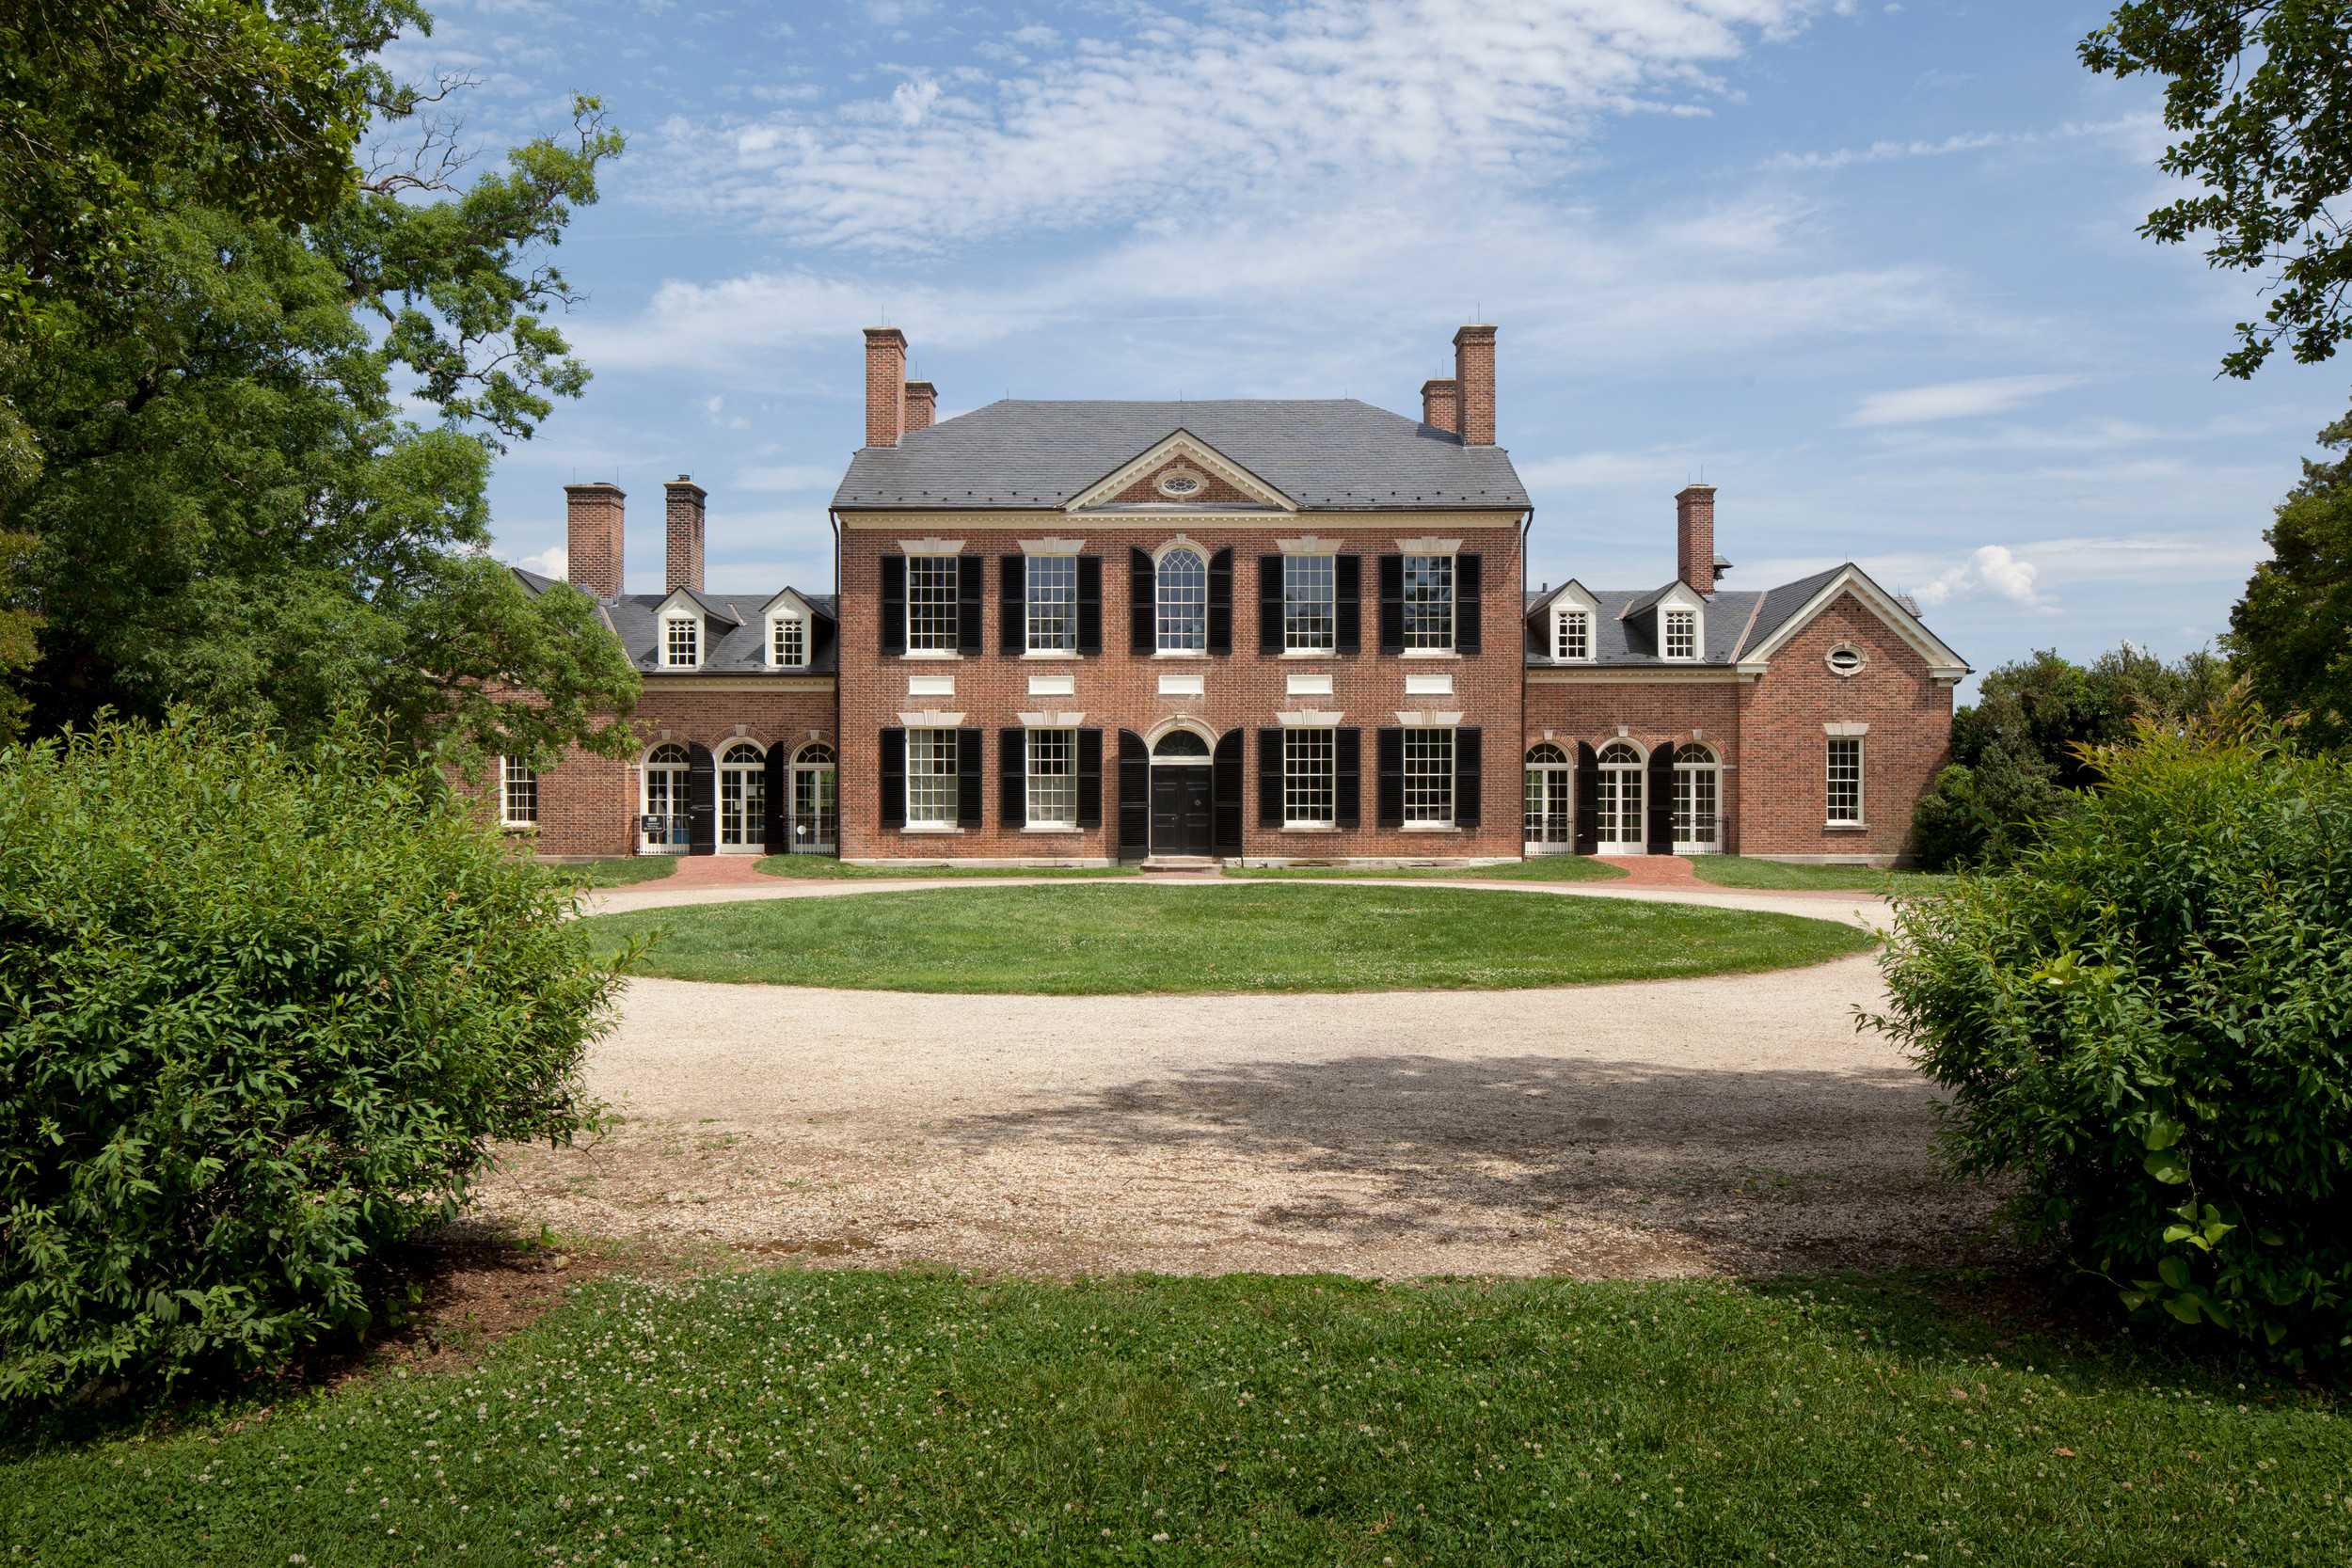 Woodlawn Plantation in Fairfax County, Virginia